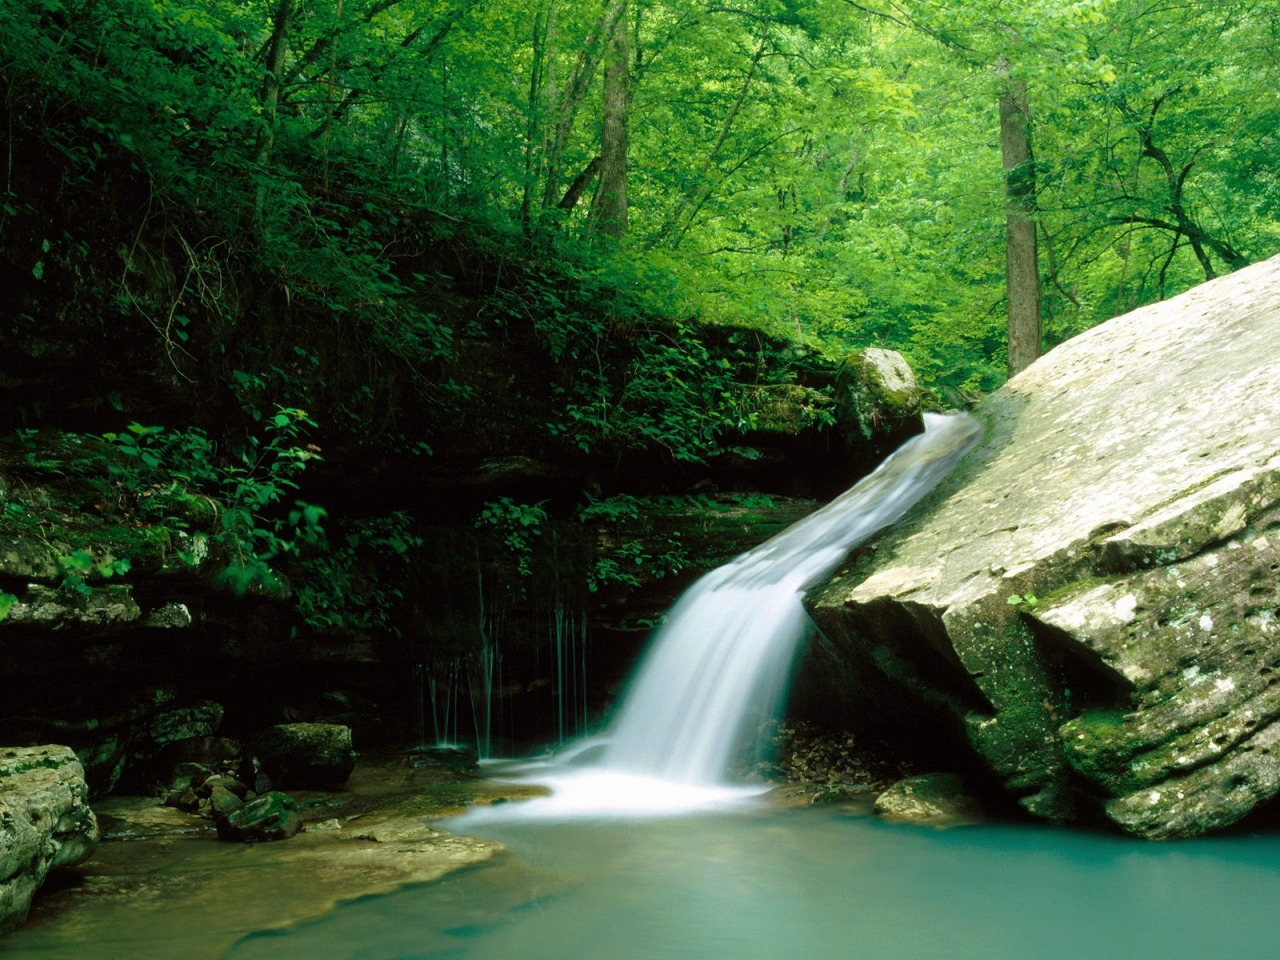 Indian Creek Wallpaper Waterfalls Nature Wallpapers in jpg format ...